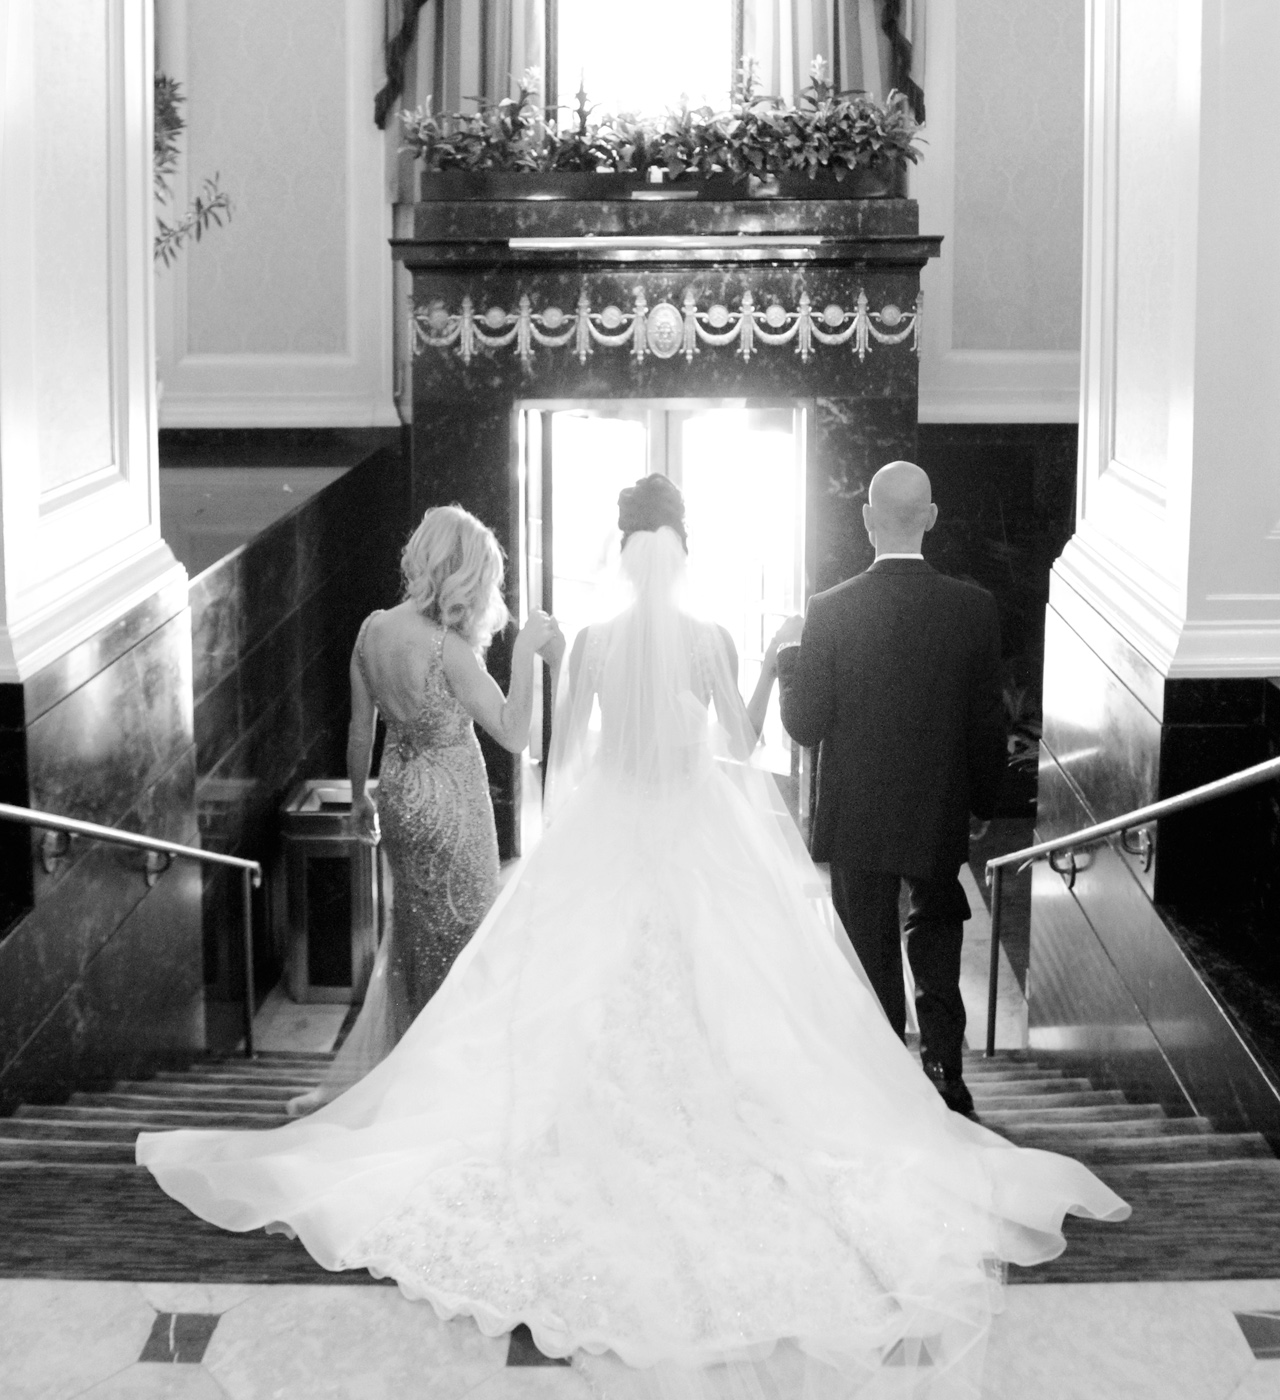 parents walking bride down stairs in pittsburgh pa wedding